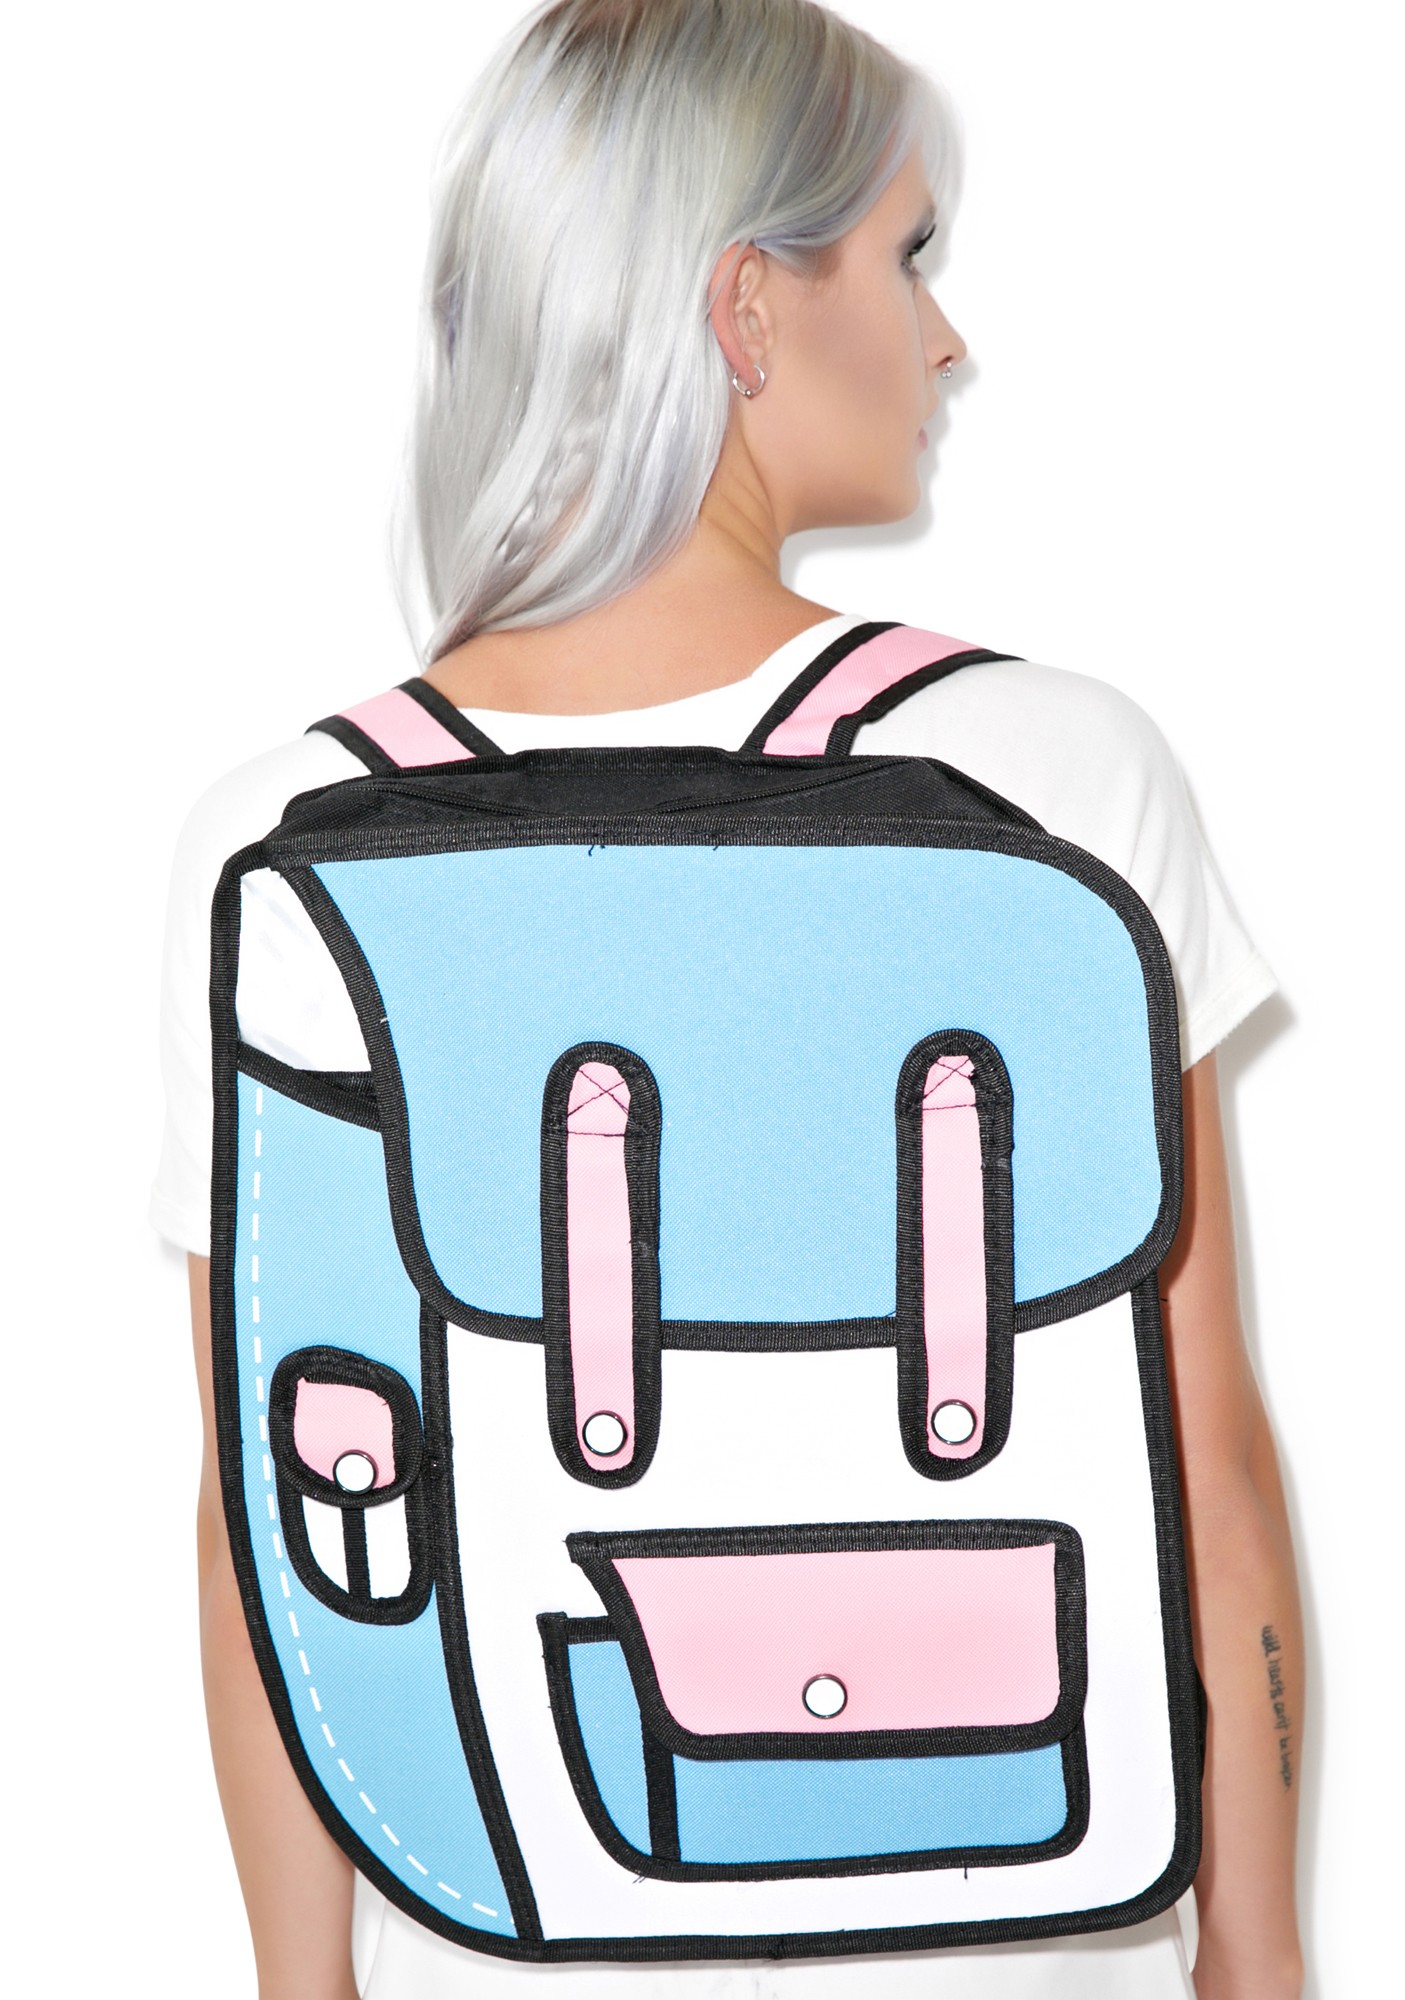 2d Backpack Blue Pink Bags